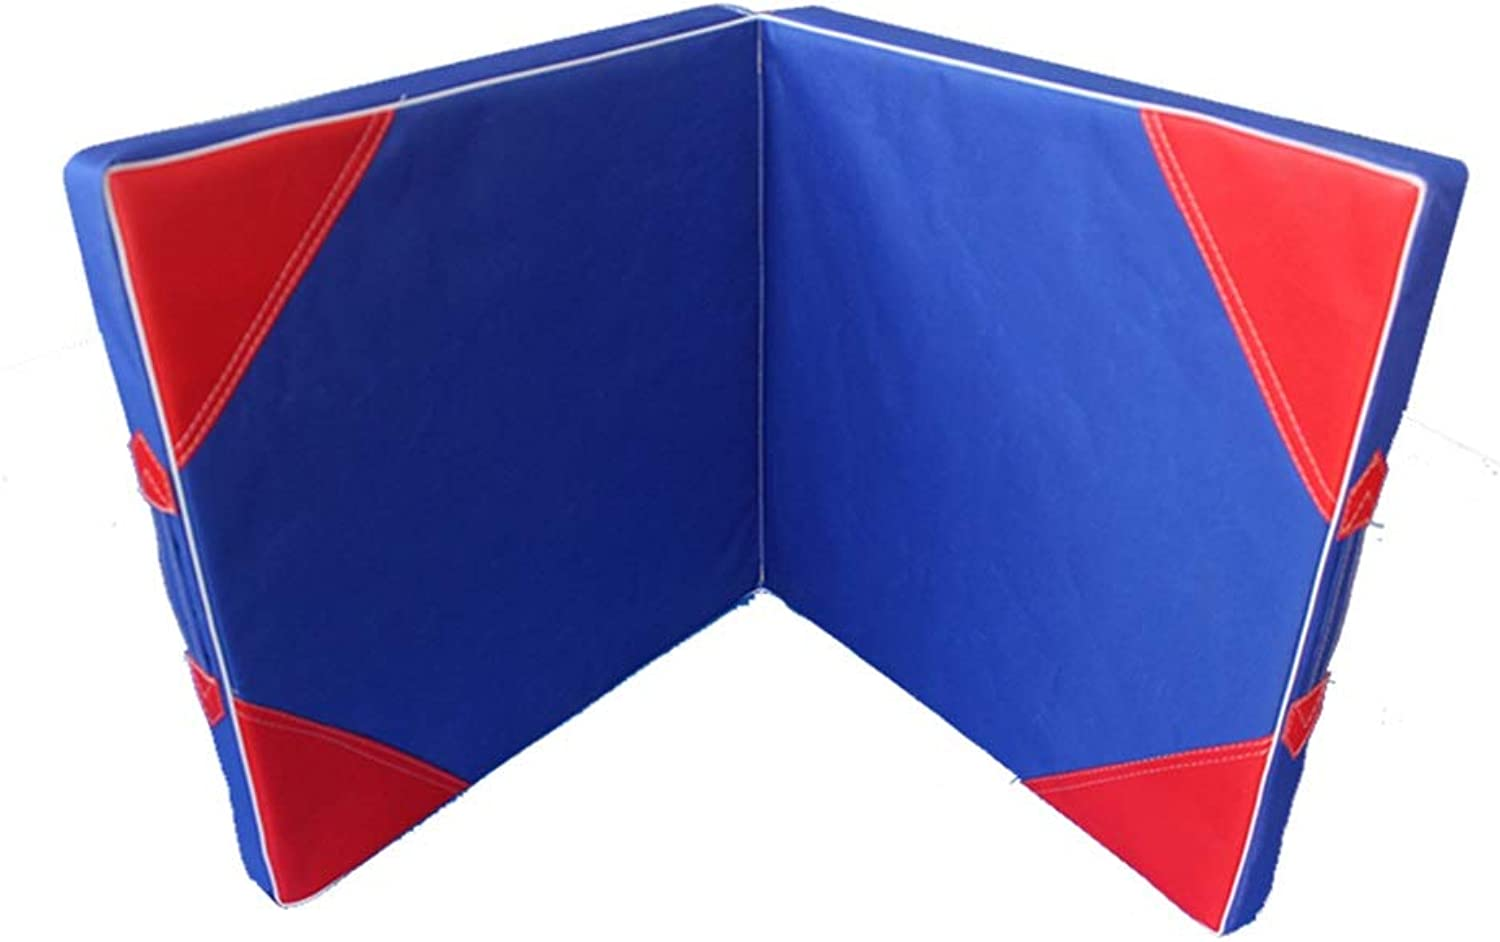 Foldable Gymnastic Mat Oxford Cloth Builtin Sponge Mat Dance Classroom Training With Thick Pad Removable And Washable (Size   120X60X5CM)